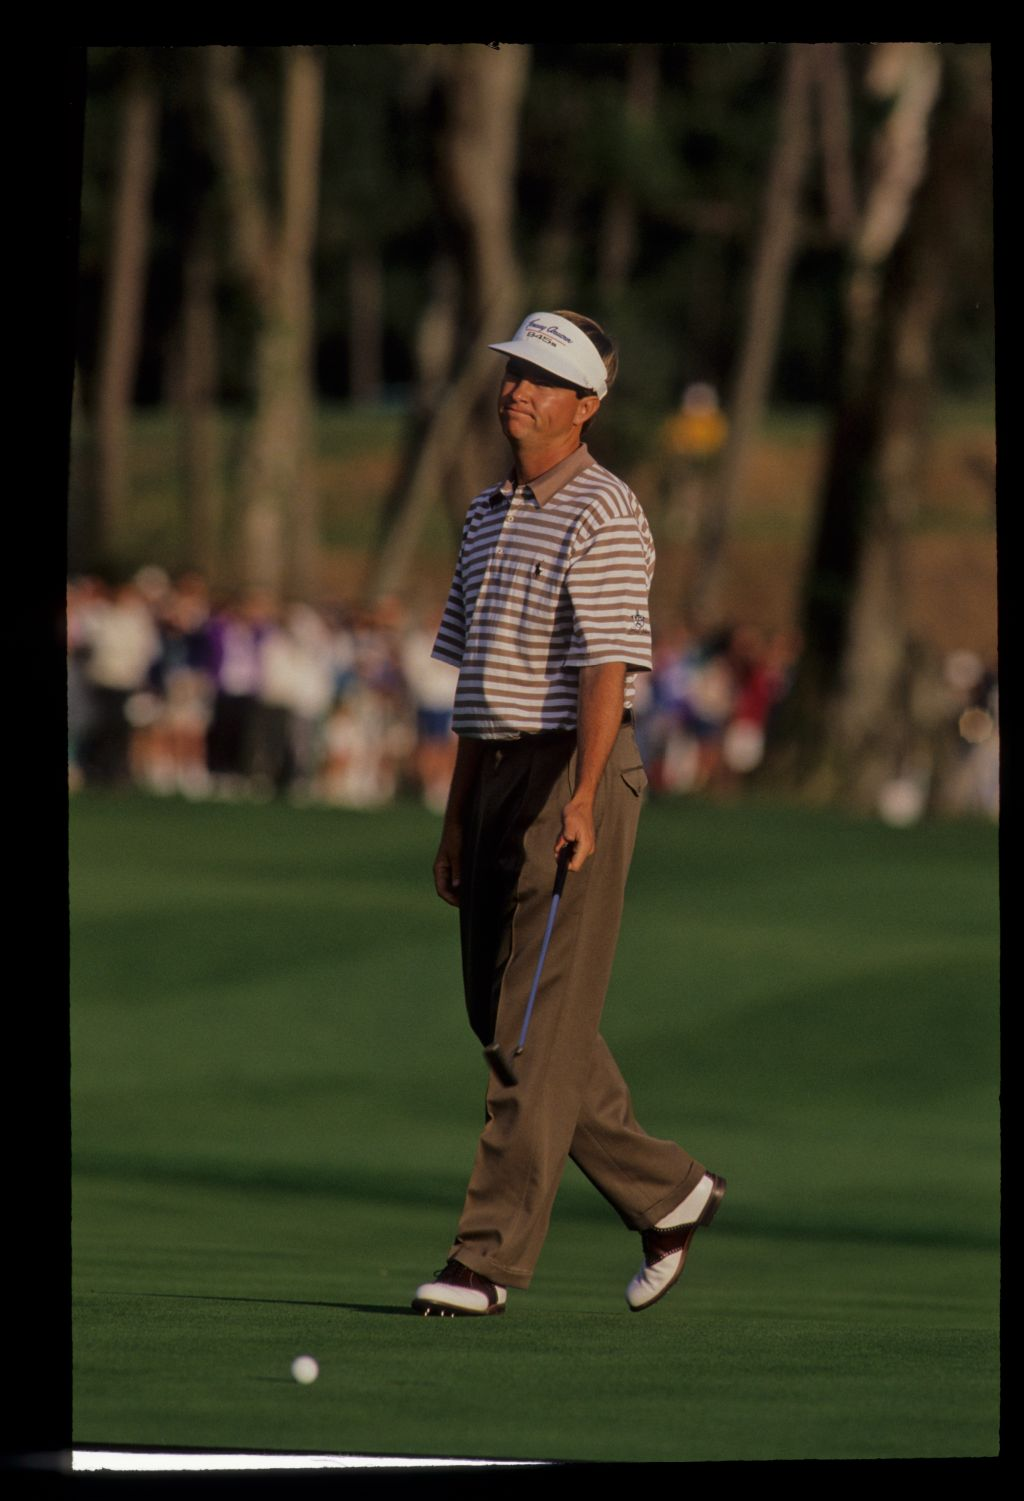 Davis Love III reacting to a putt on the way to winning the 1992 TPC